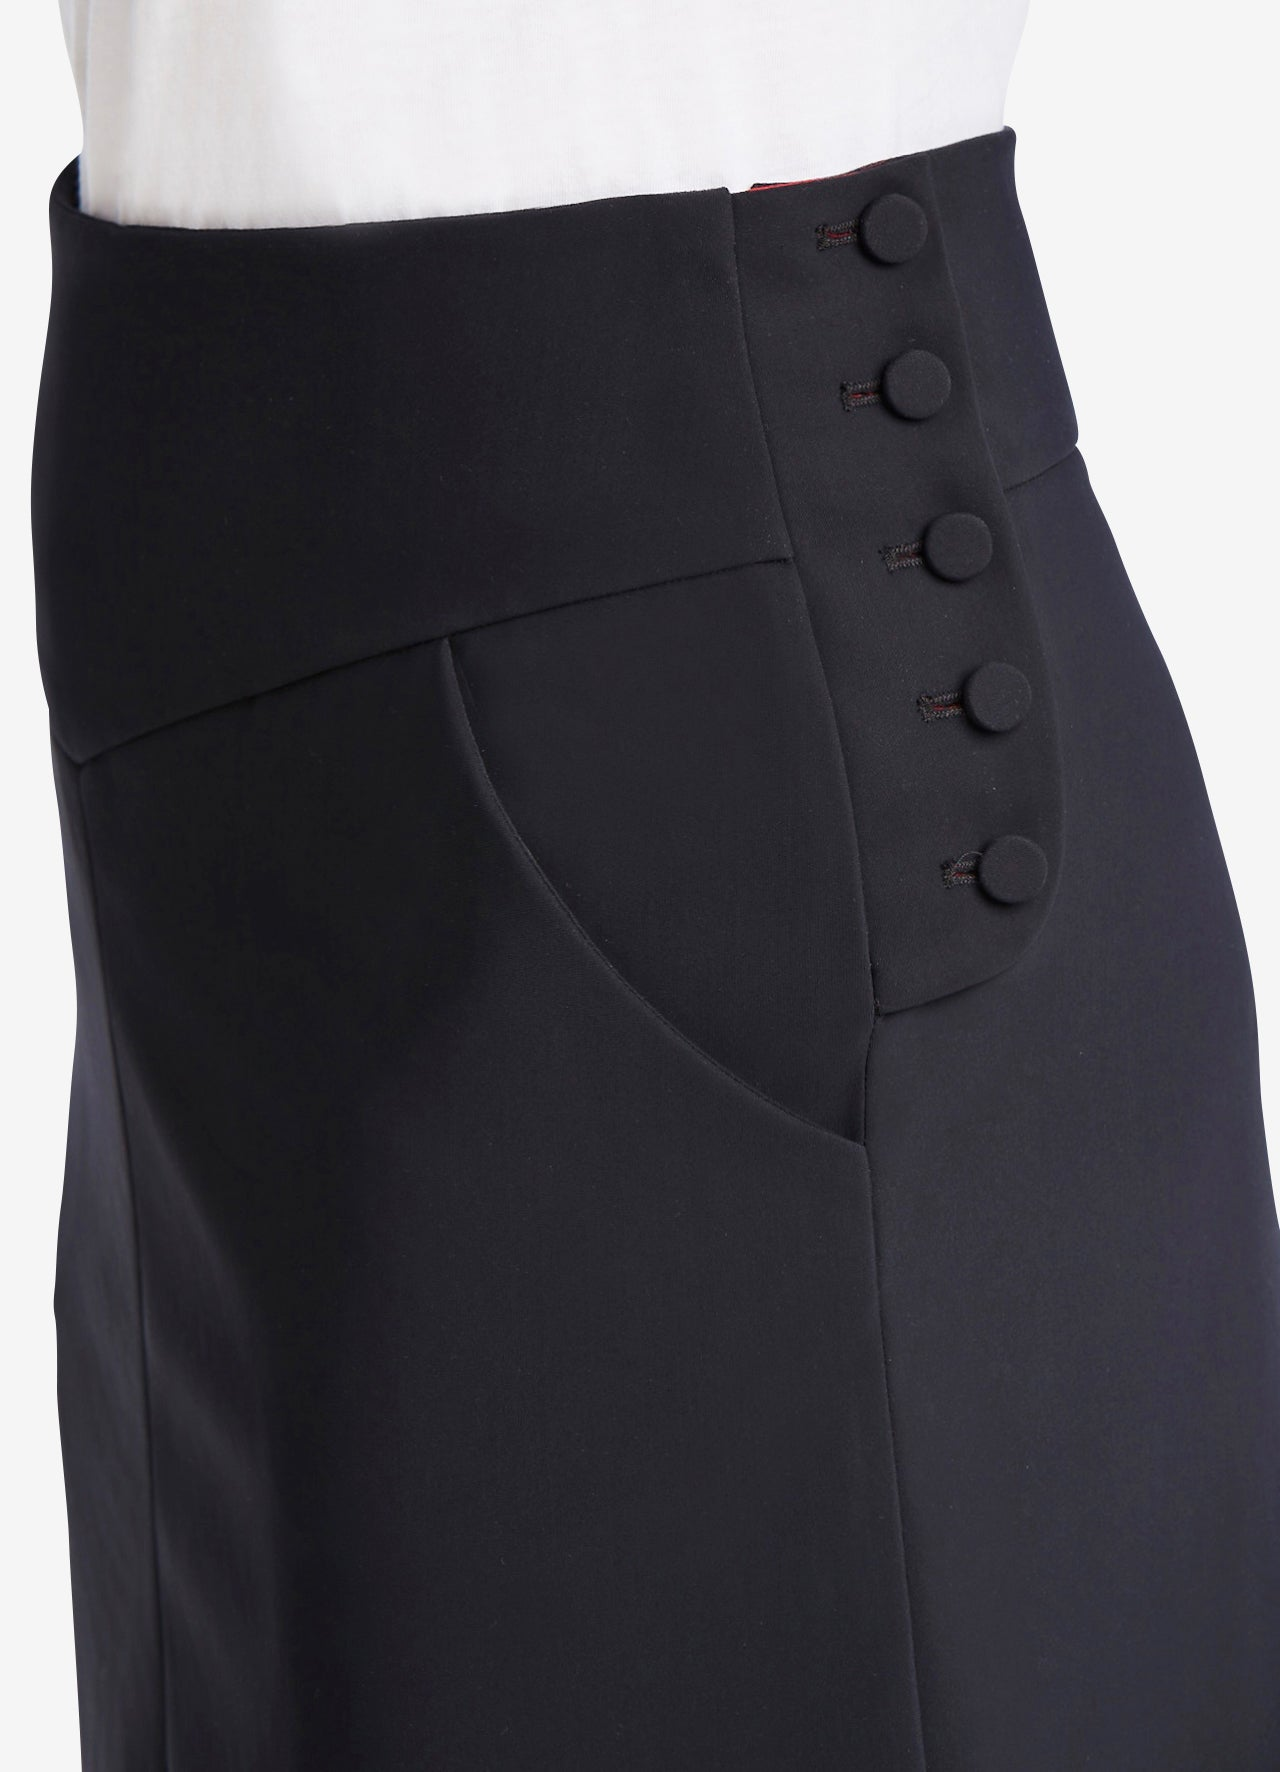 Bias Cut Skirt Detail